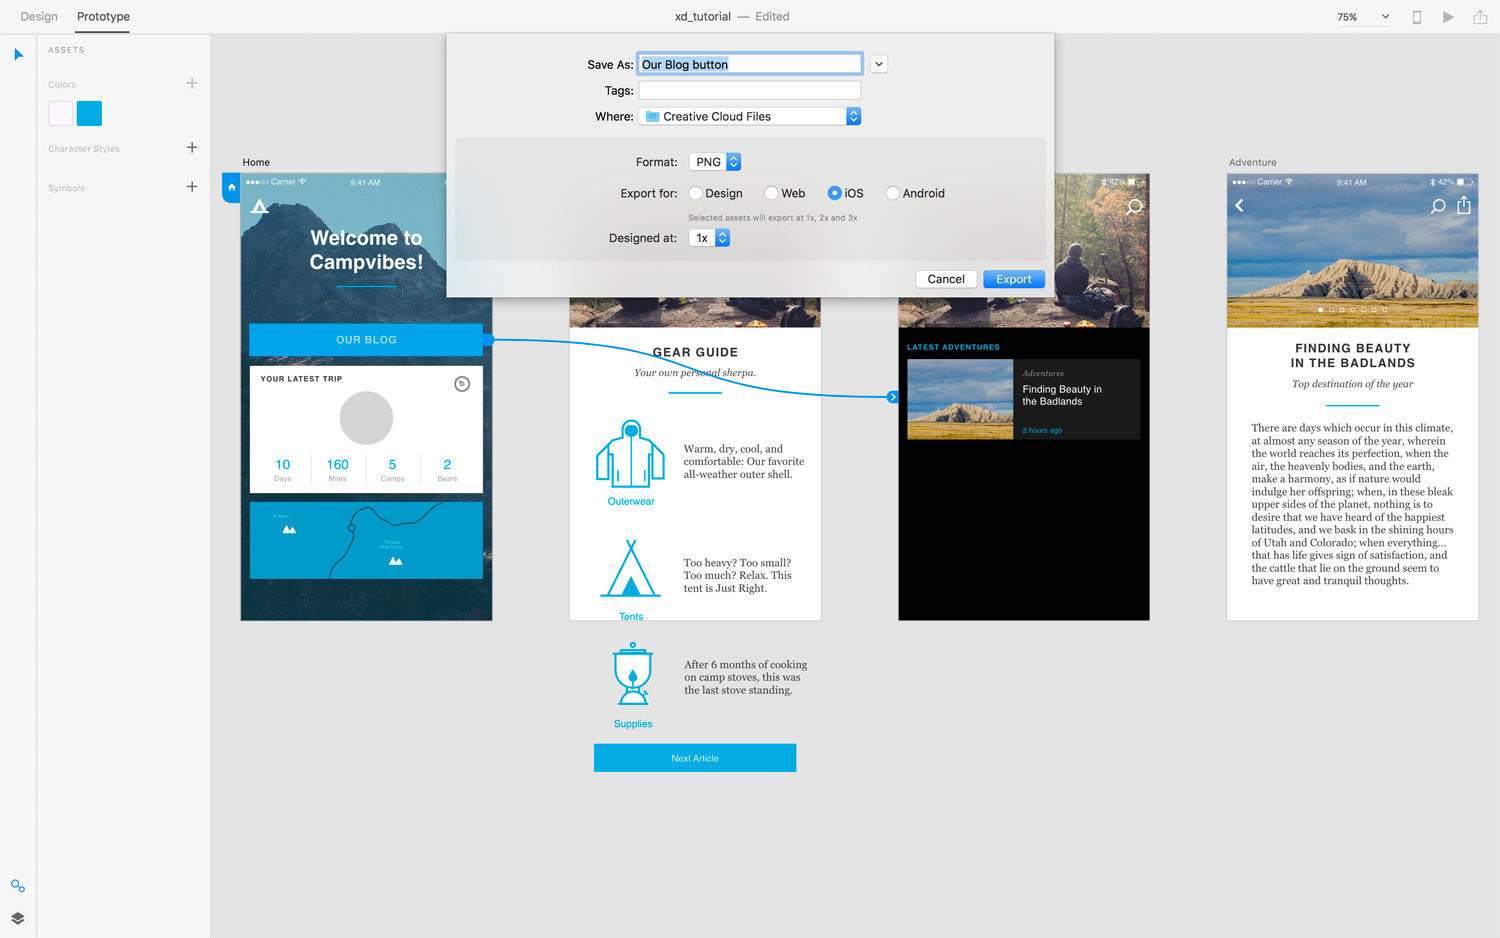 How to use Adobe XD - Tutorials - Digital Arts